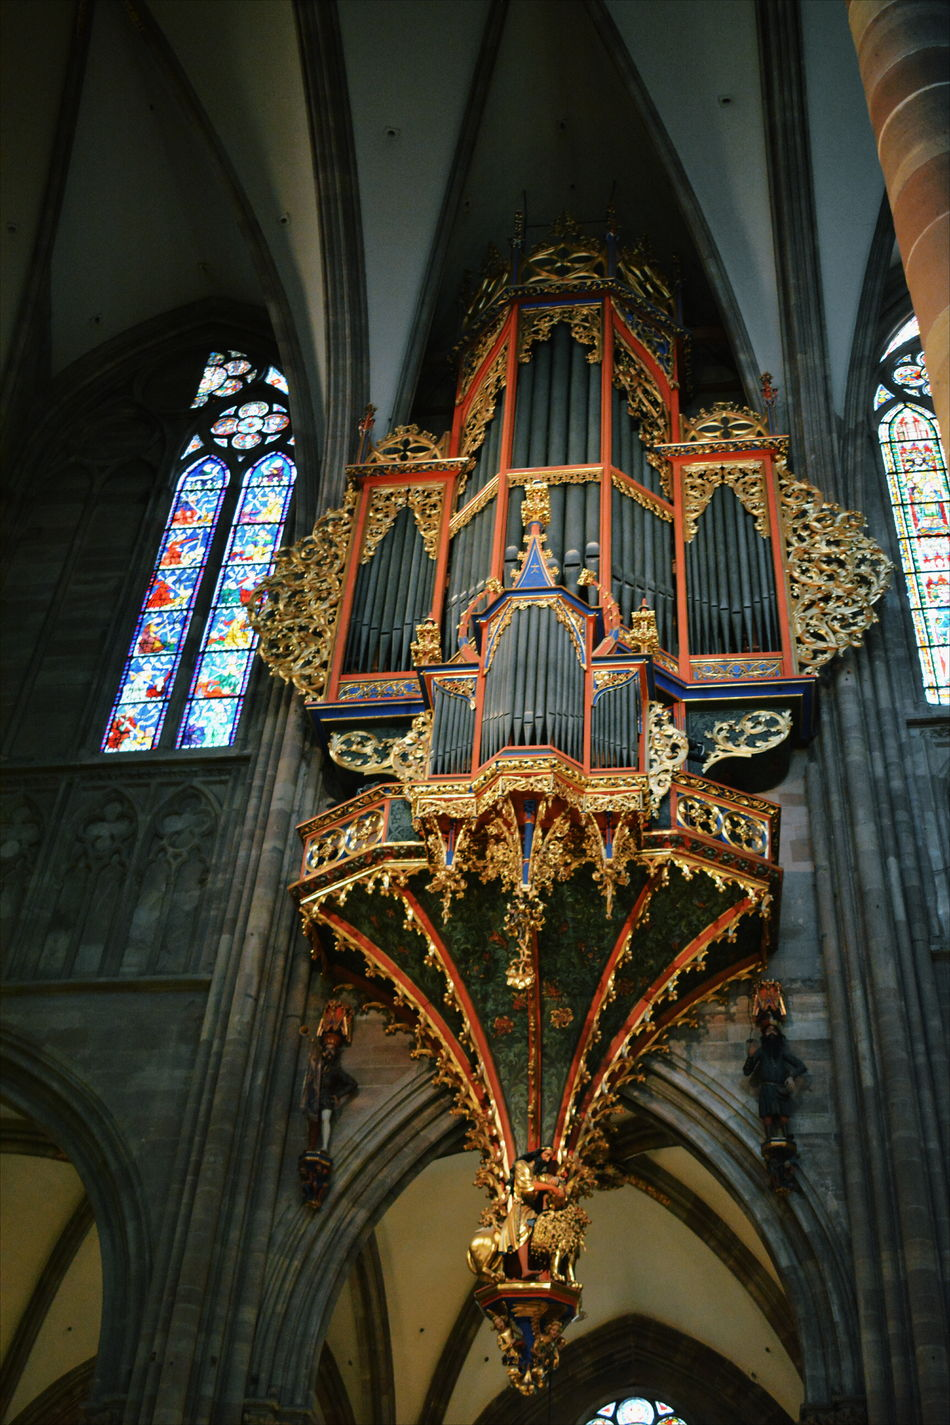 Architecture Built Structure Cathedral Church Day Gold Indoors  Instrument Low Angle View Music No People Old Organ Ornate Place Of Worship Religion Stained Glass Window Travel Destinations Art Is Everywhere